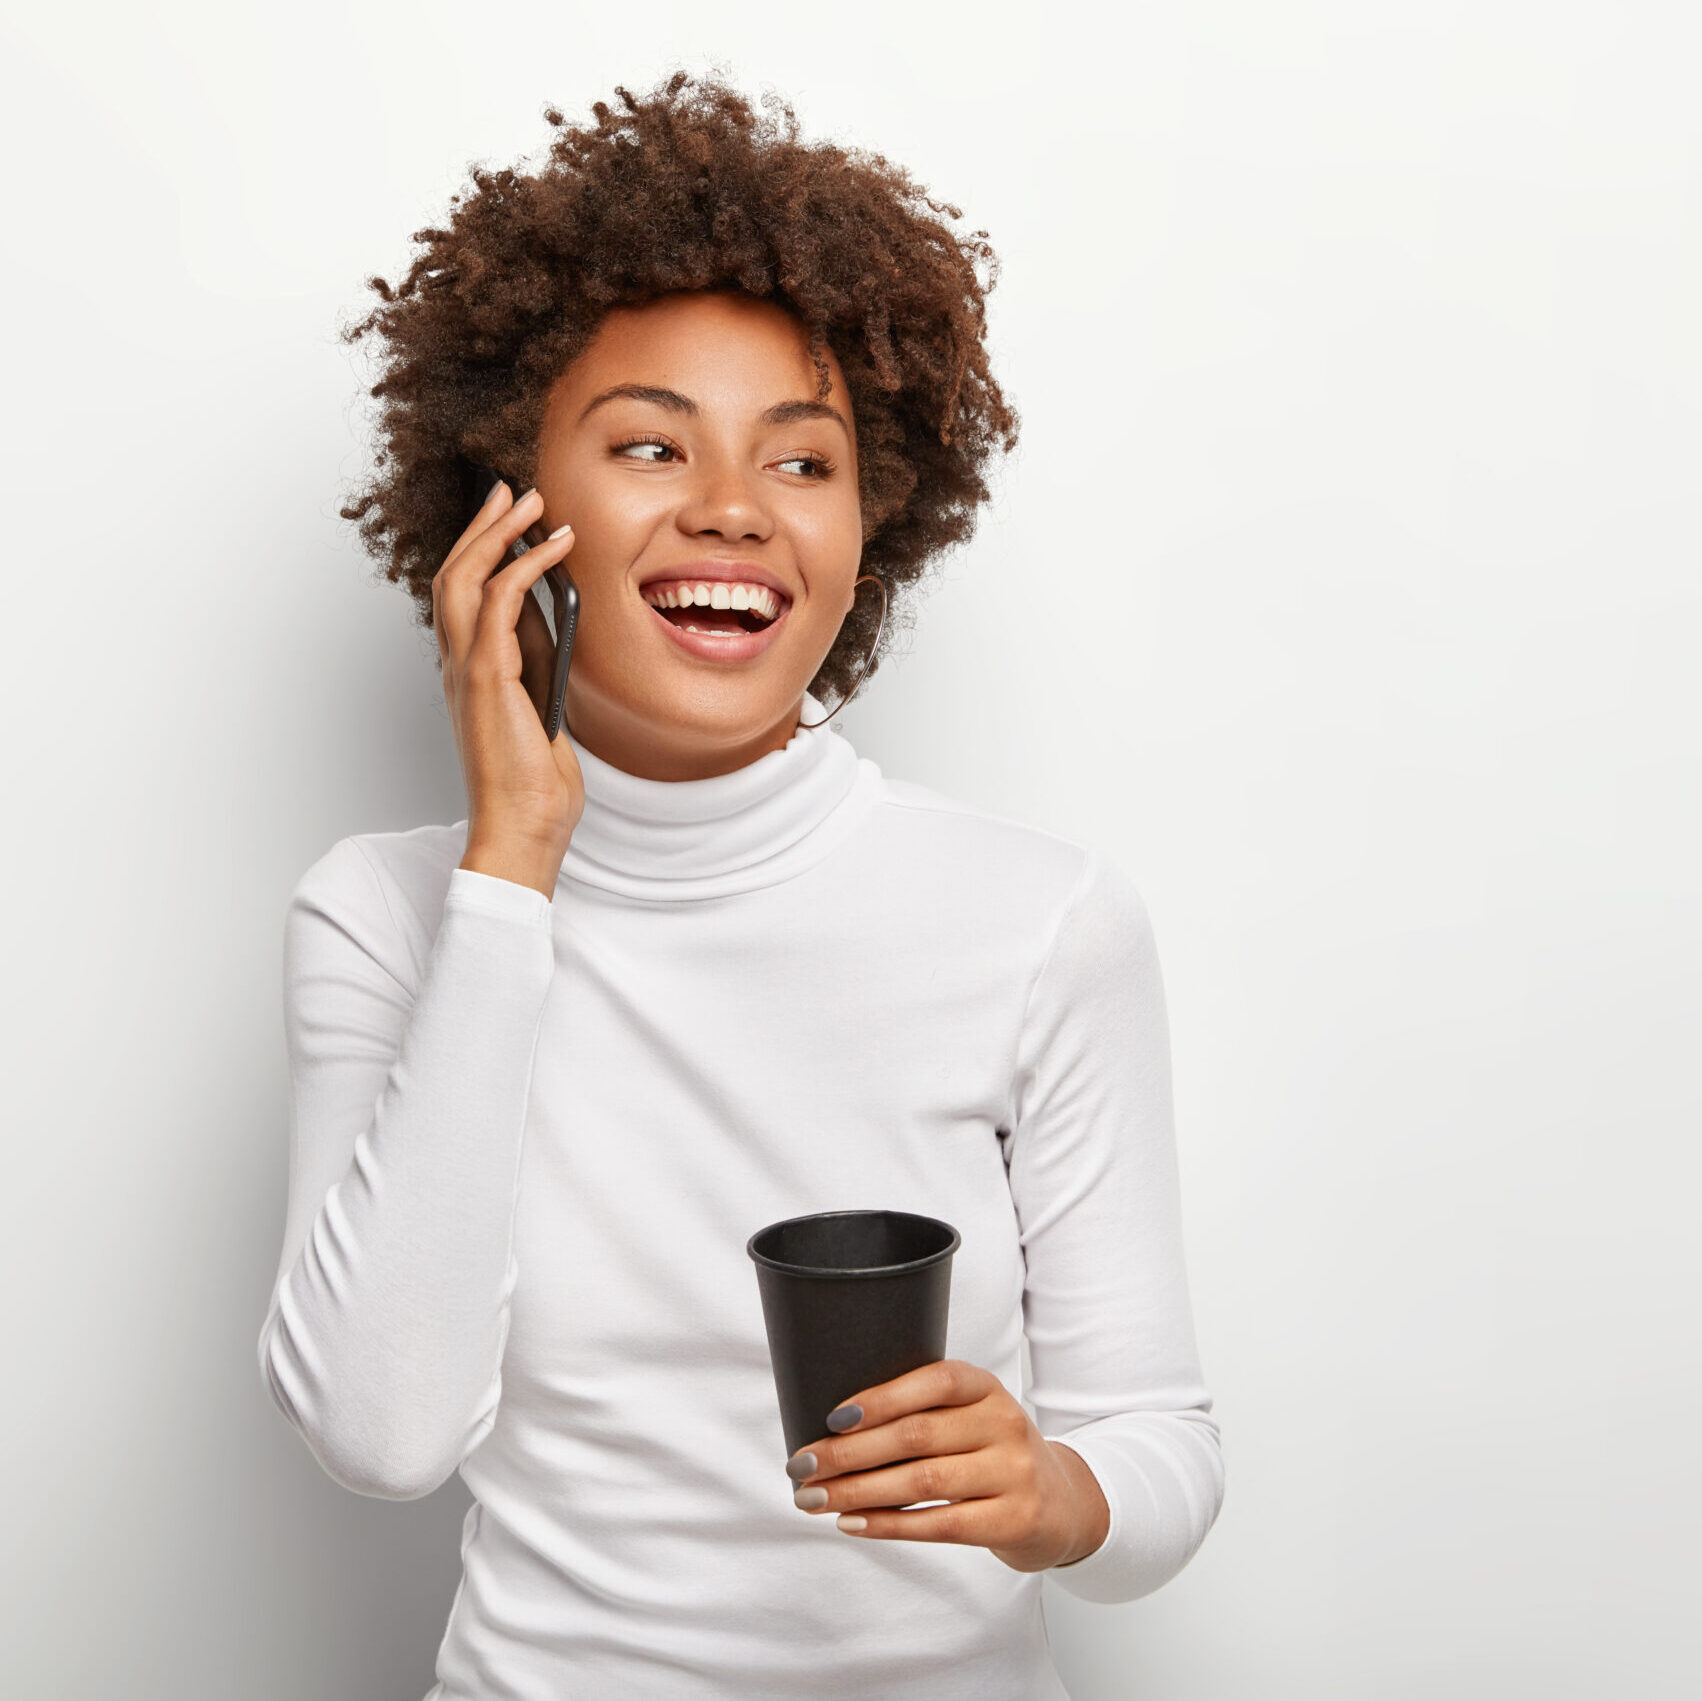 Photo of satisfied carefree woman with curly haircut, talks via smartphone, looks positively aside, drinks takeout coffee, being in good mood during lively conversation. People and lifestyle